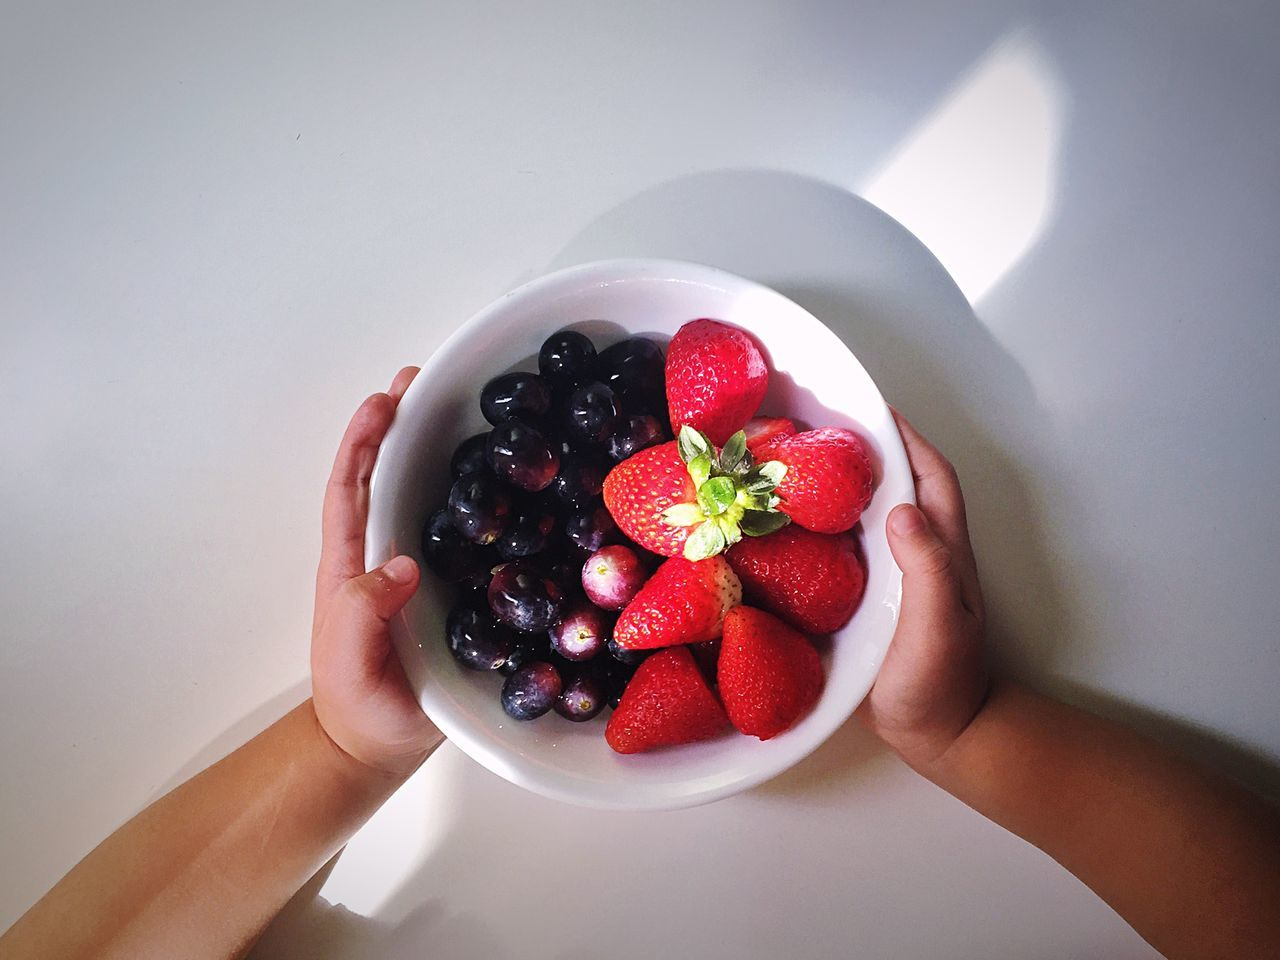 Cropped hand holding bowl of strawberries and grapes over table